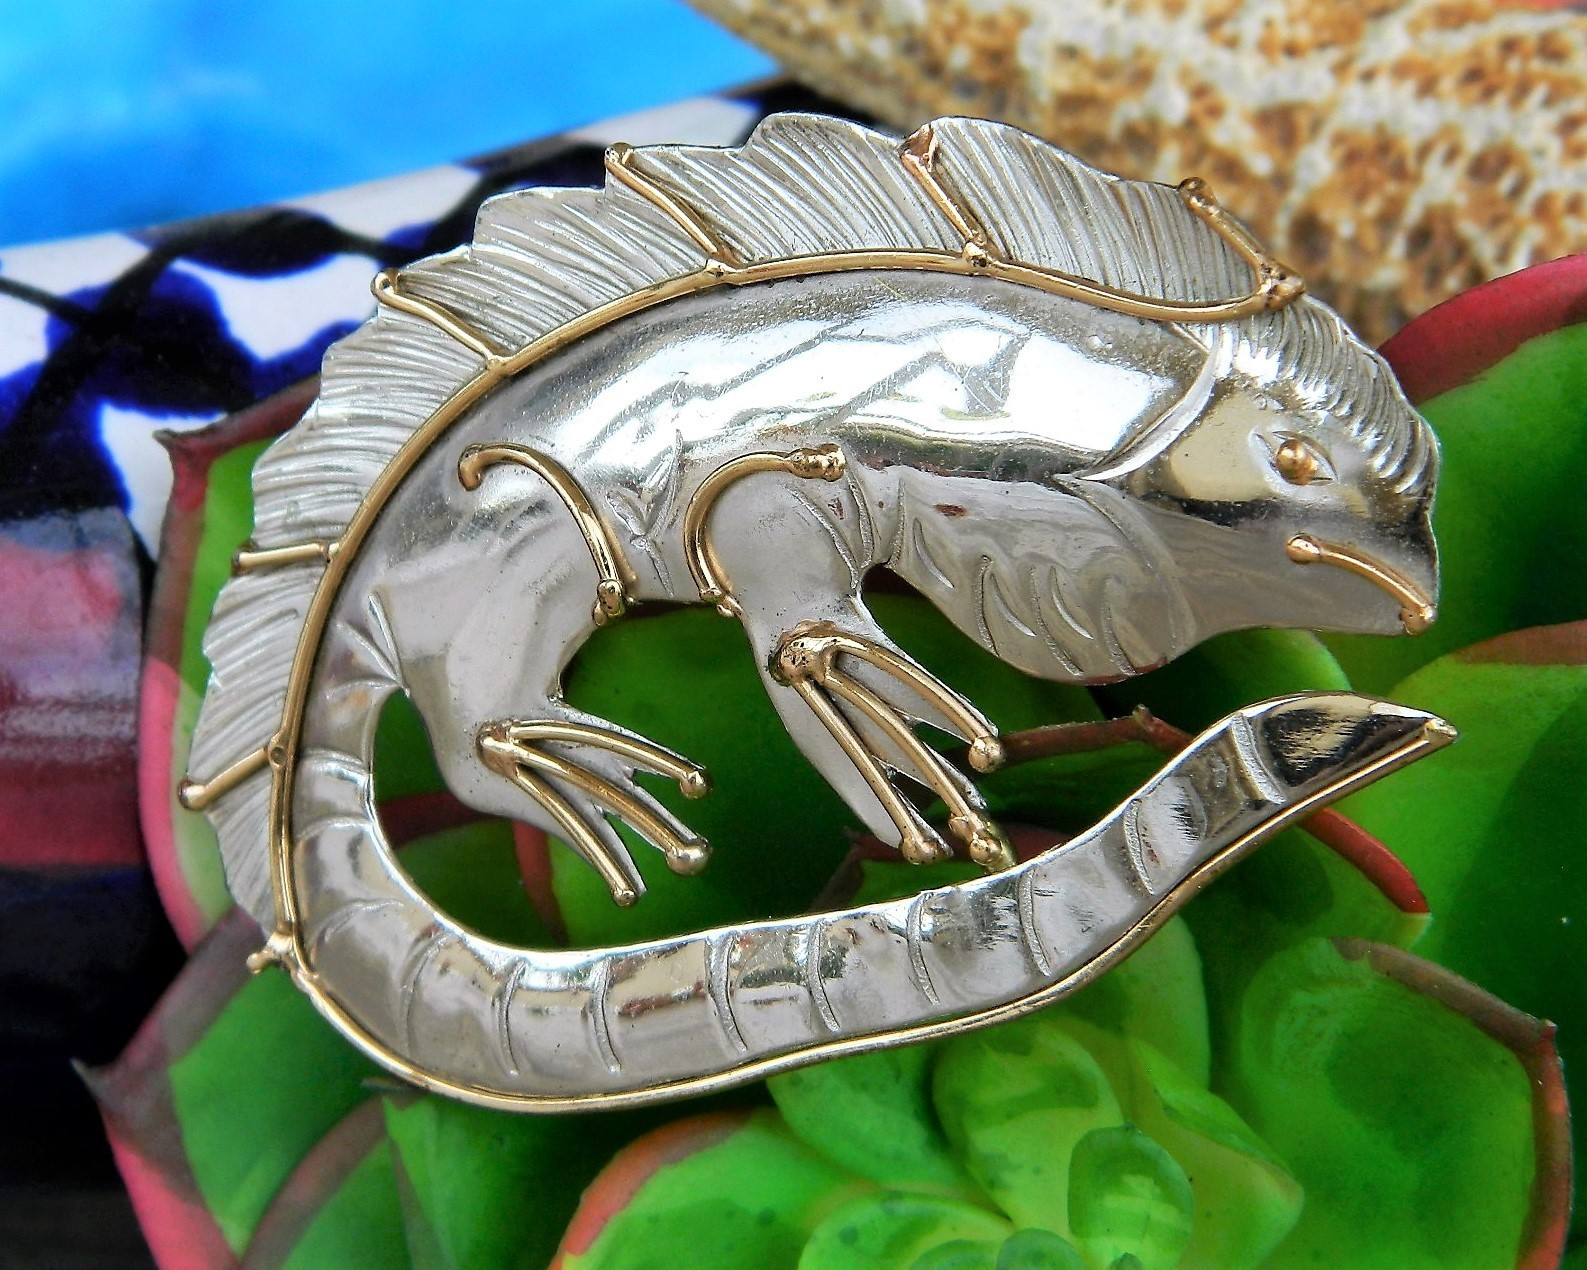 Primary image for Iguana Lizard Mixed Metal Brooch Pin Handcrafted Silver Gold Tone OOAK